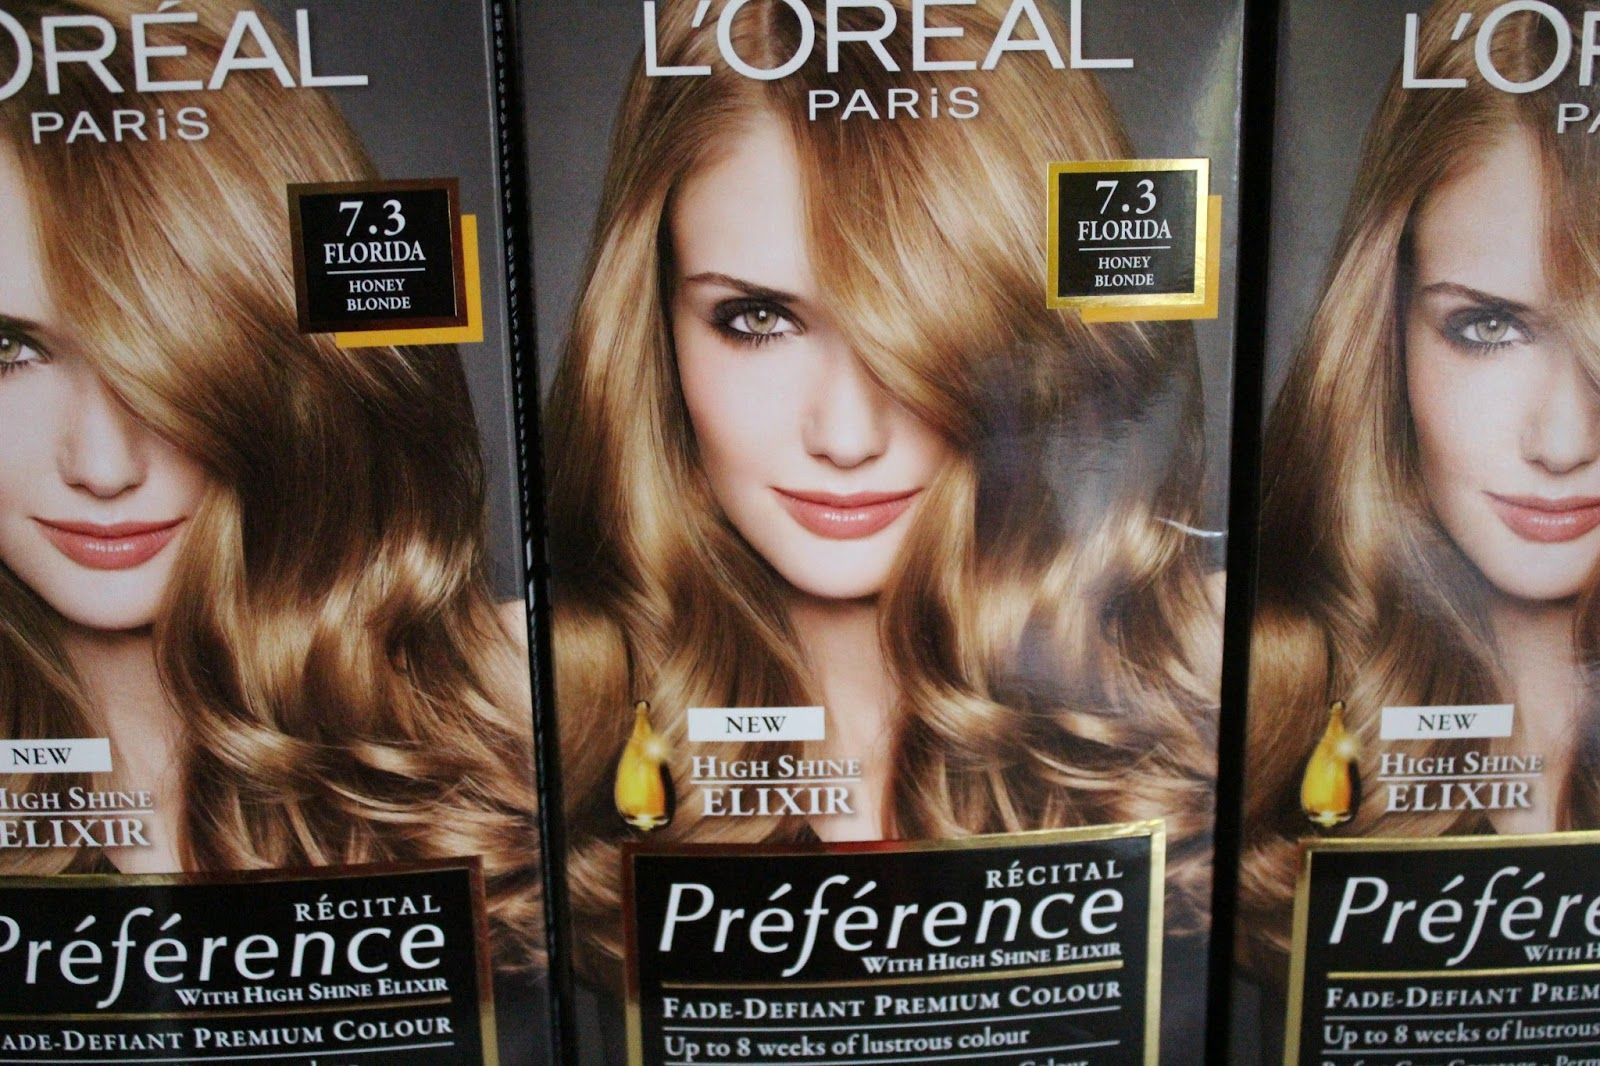 L Oreal Recital Preference In Florida Honey Blonde 7 3 Beauty